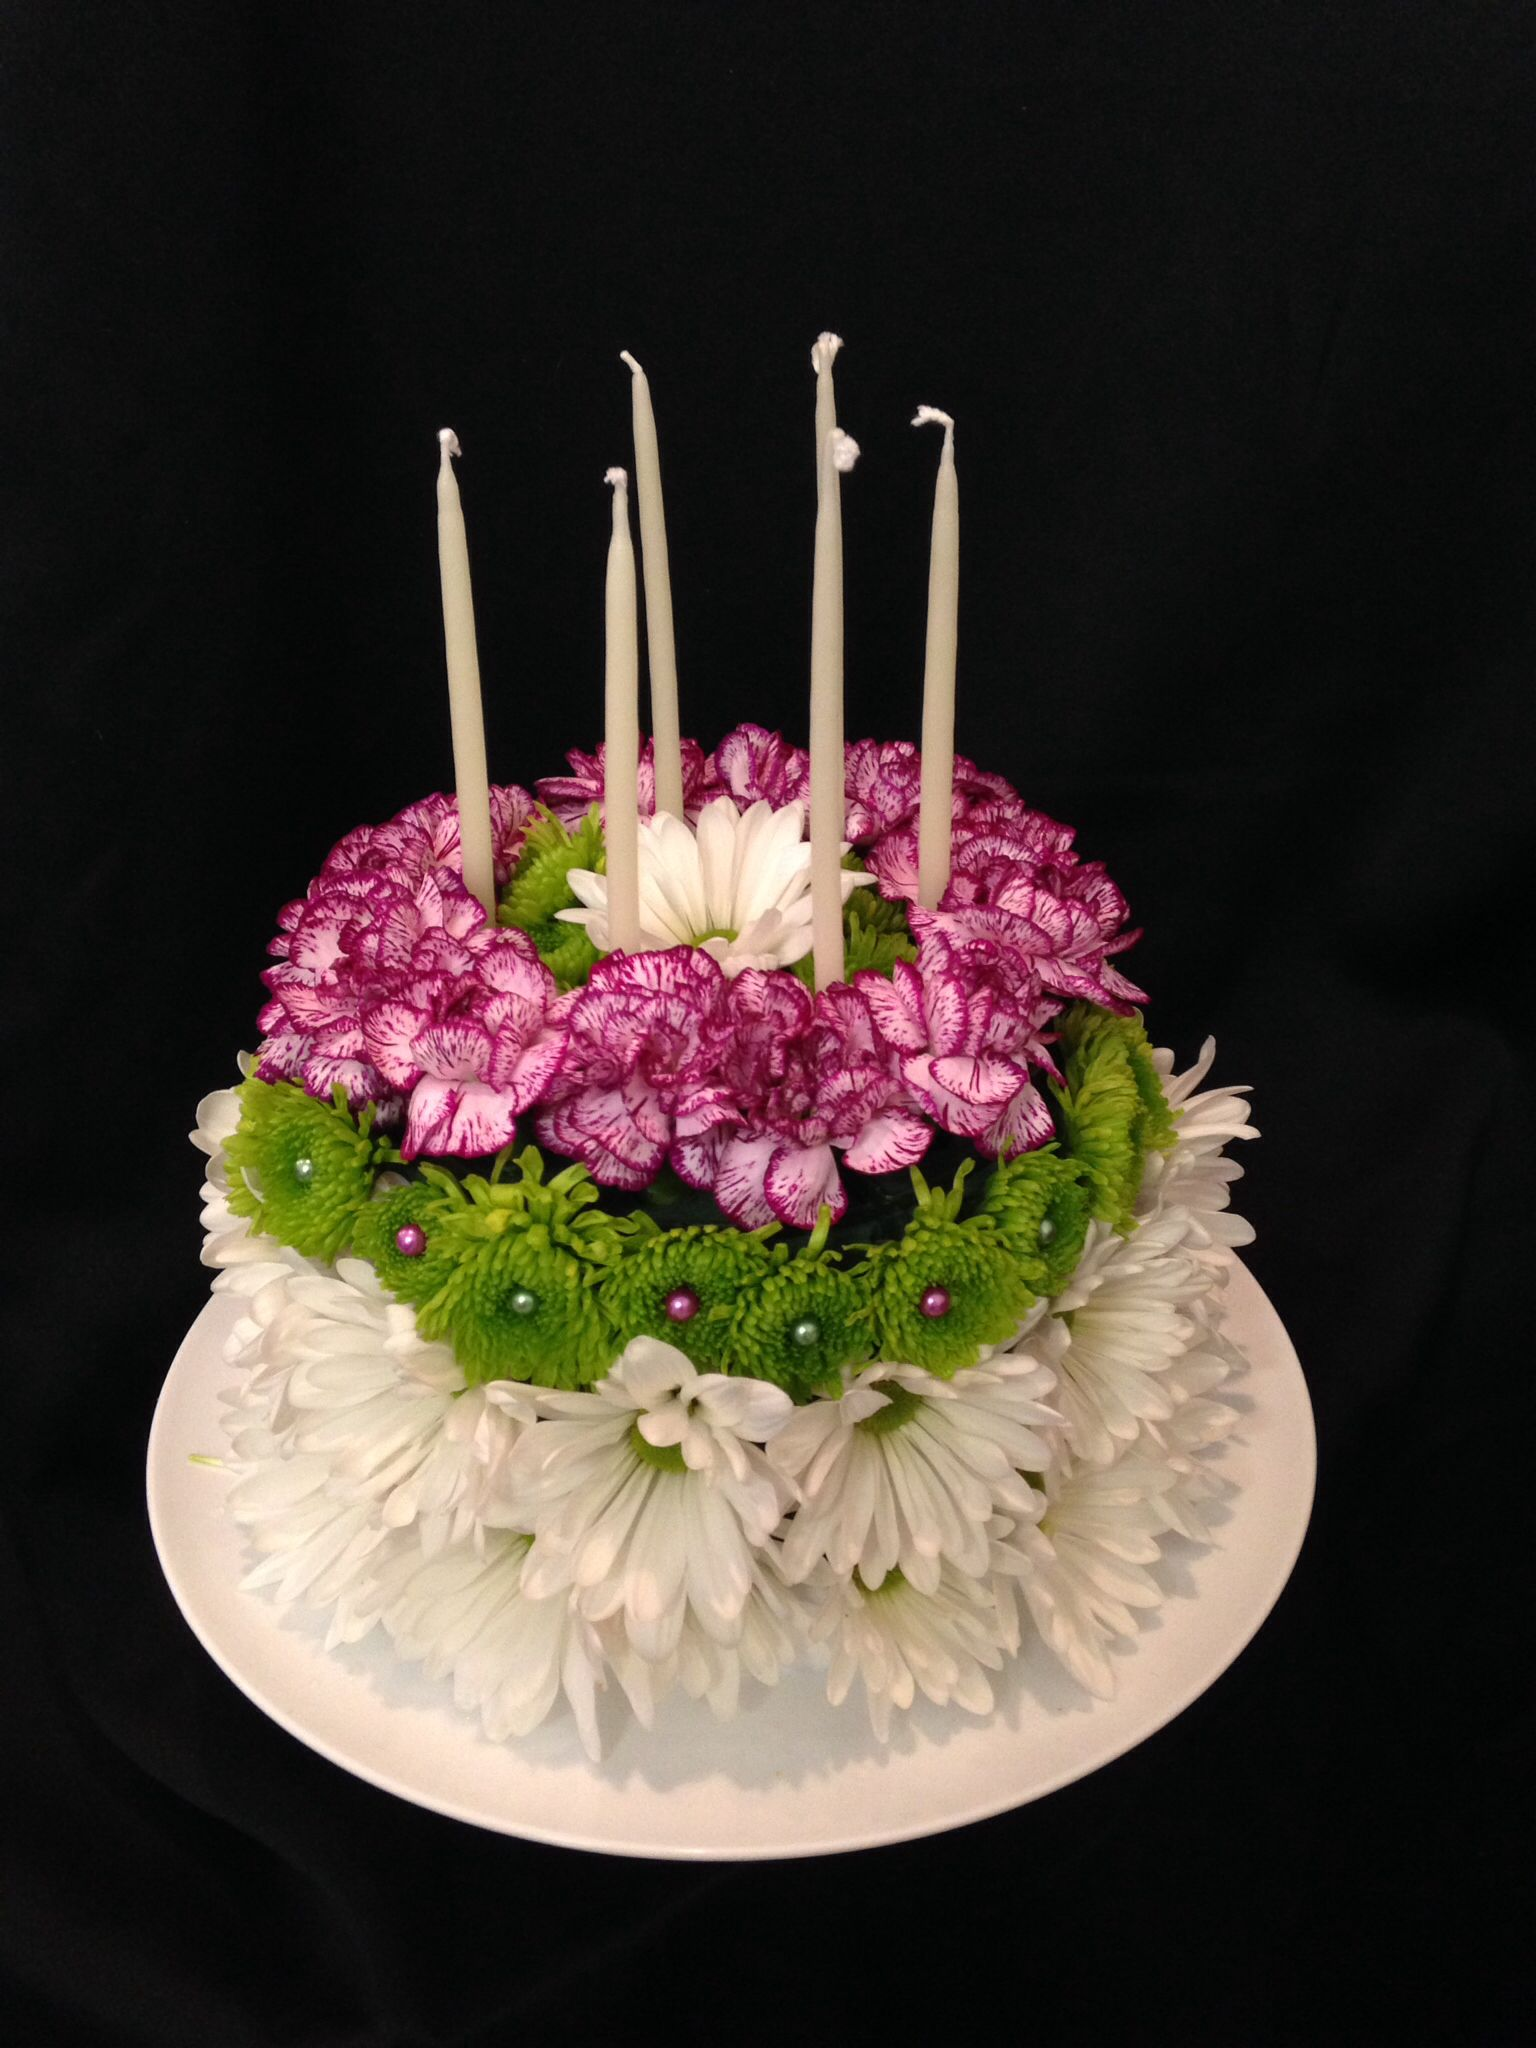 Terrific Our Birthday Cake Made With Flowers Call Today Order Yours Funny Birthday Cards Online Alyptdamsfinfo